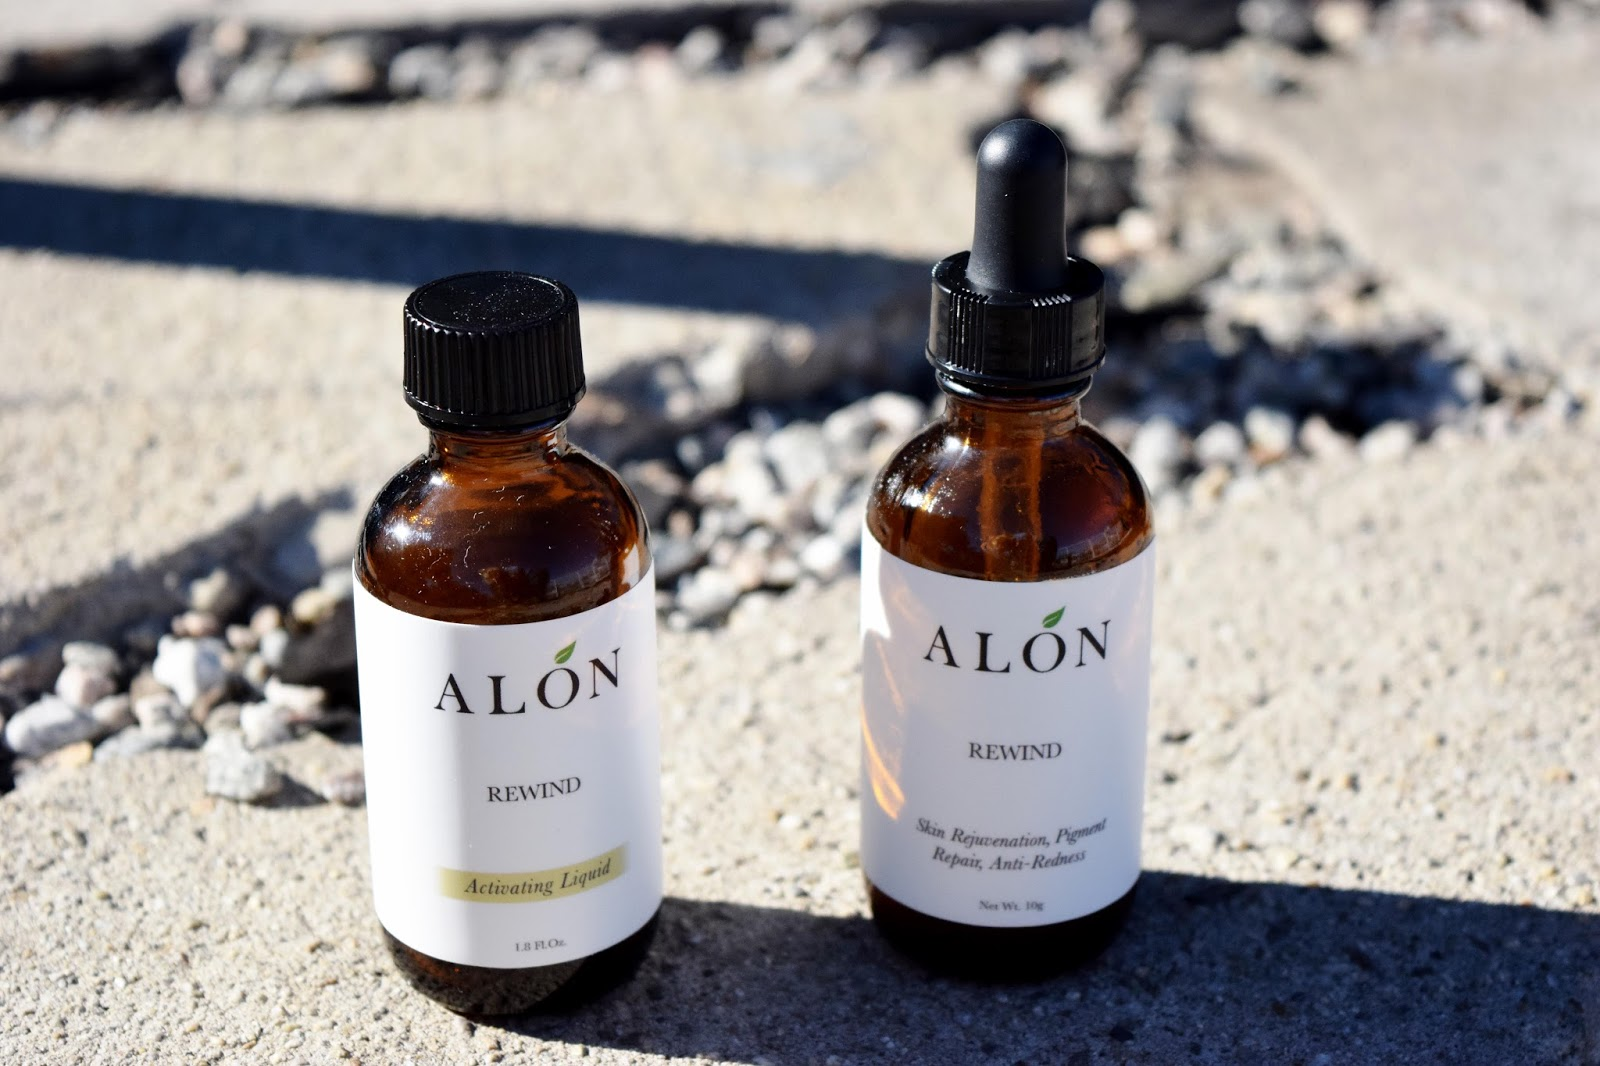 skin rejuvenation serum from Alon Labs, LLC, skin product, skin serum, review, beauty review